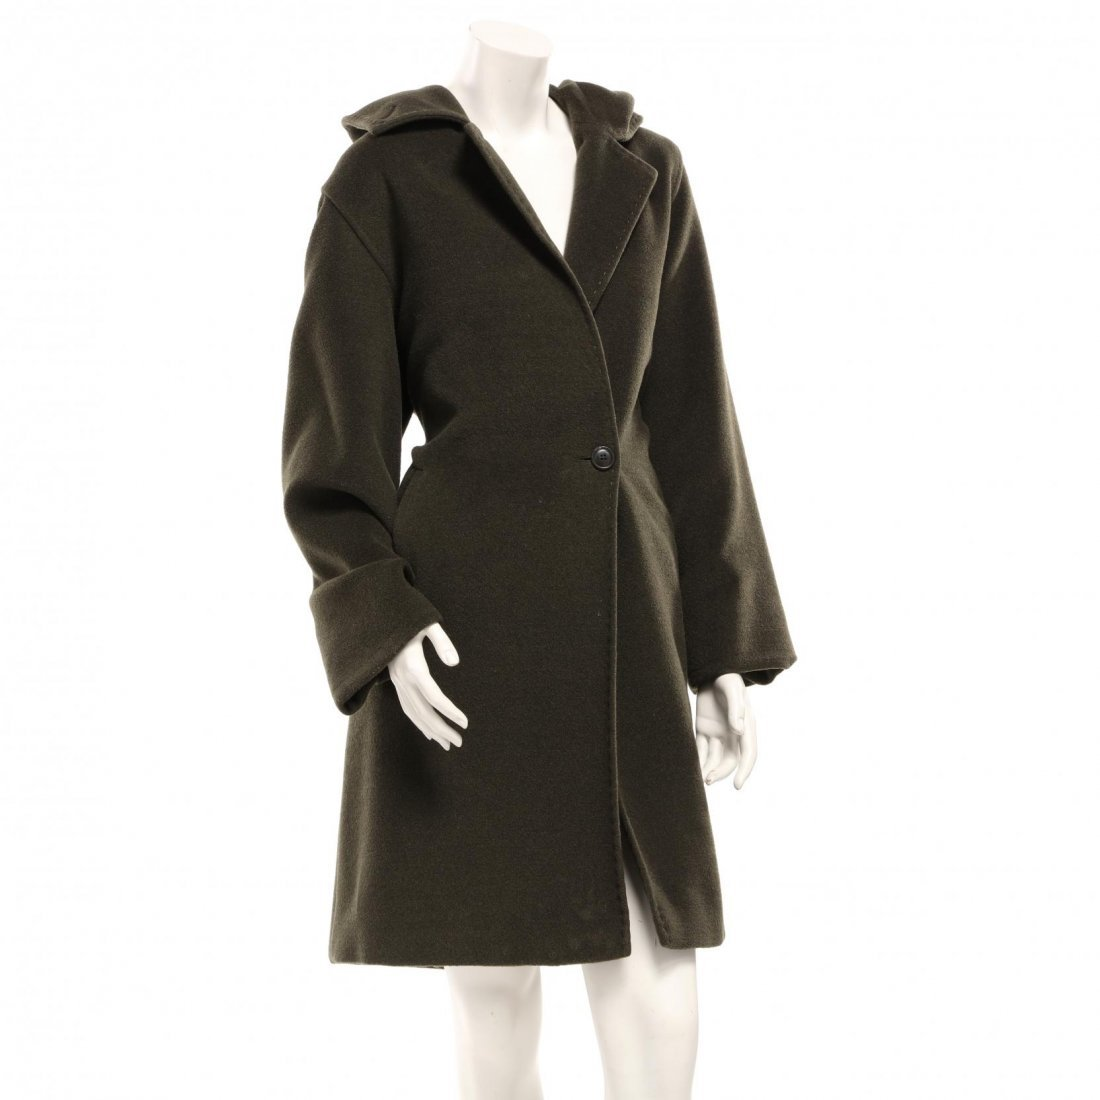 Double Face Hooded Coat, Max Mara